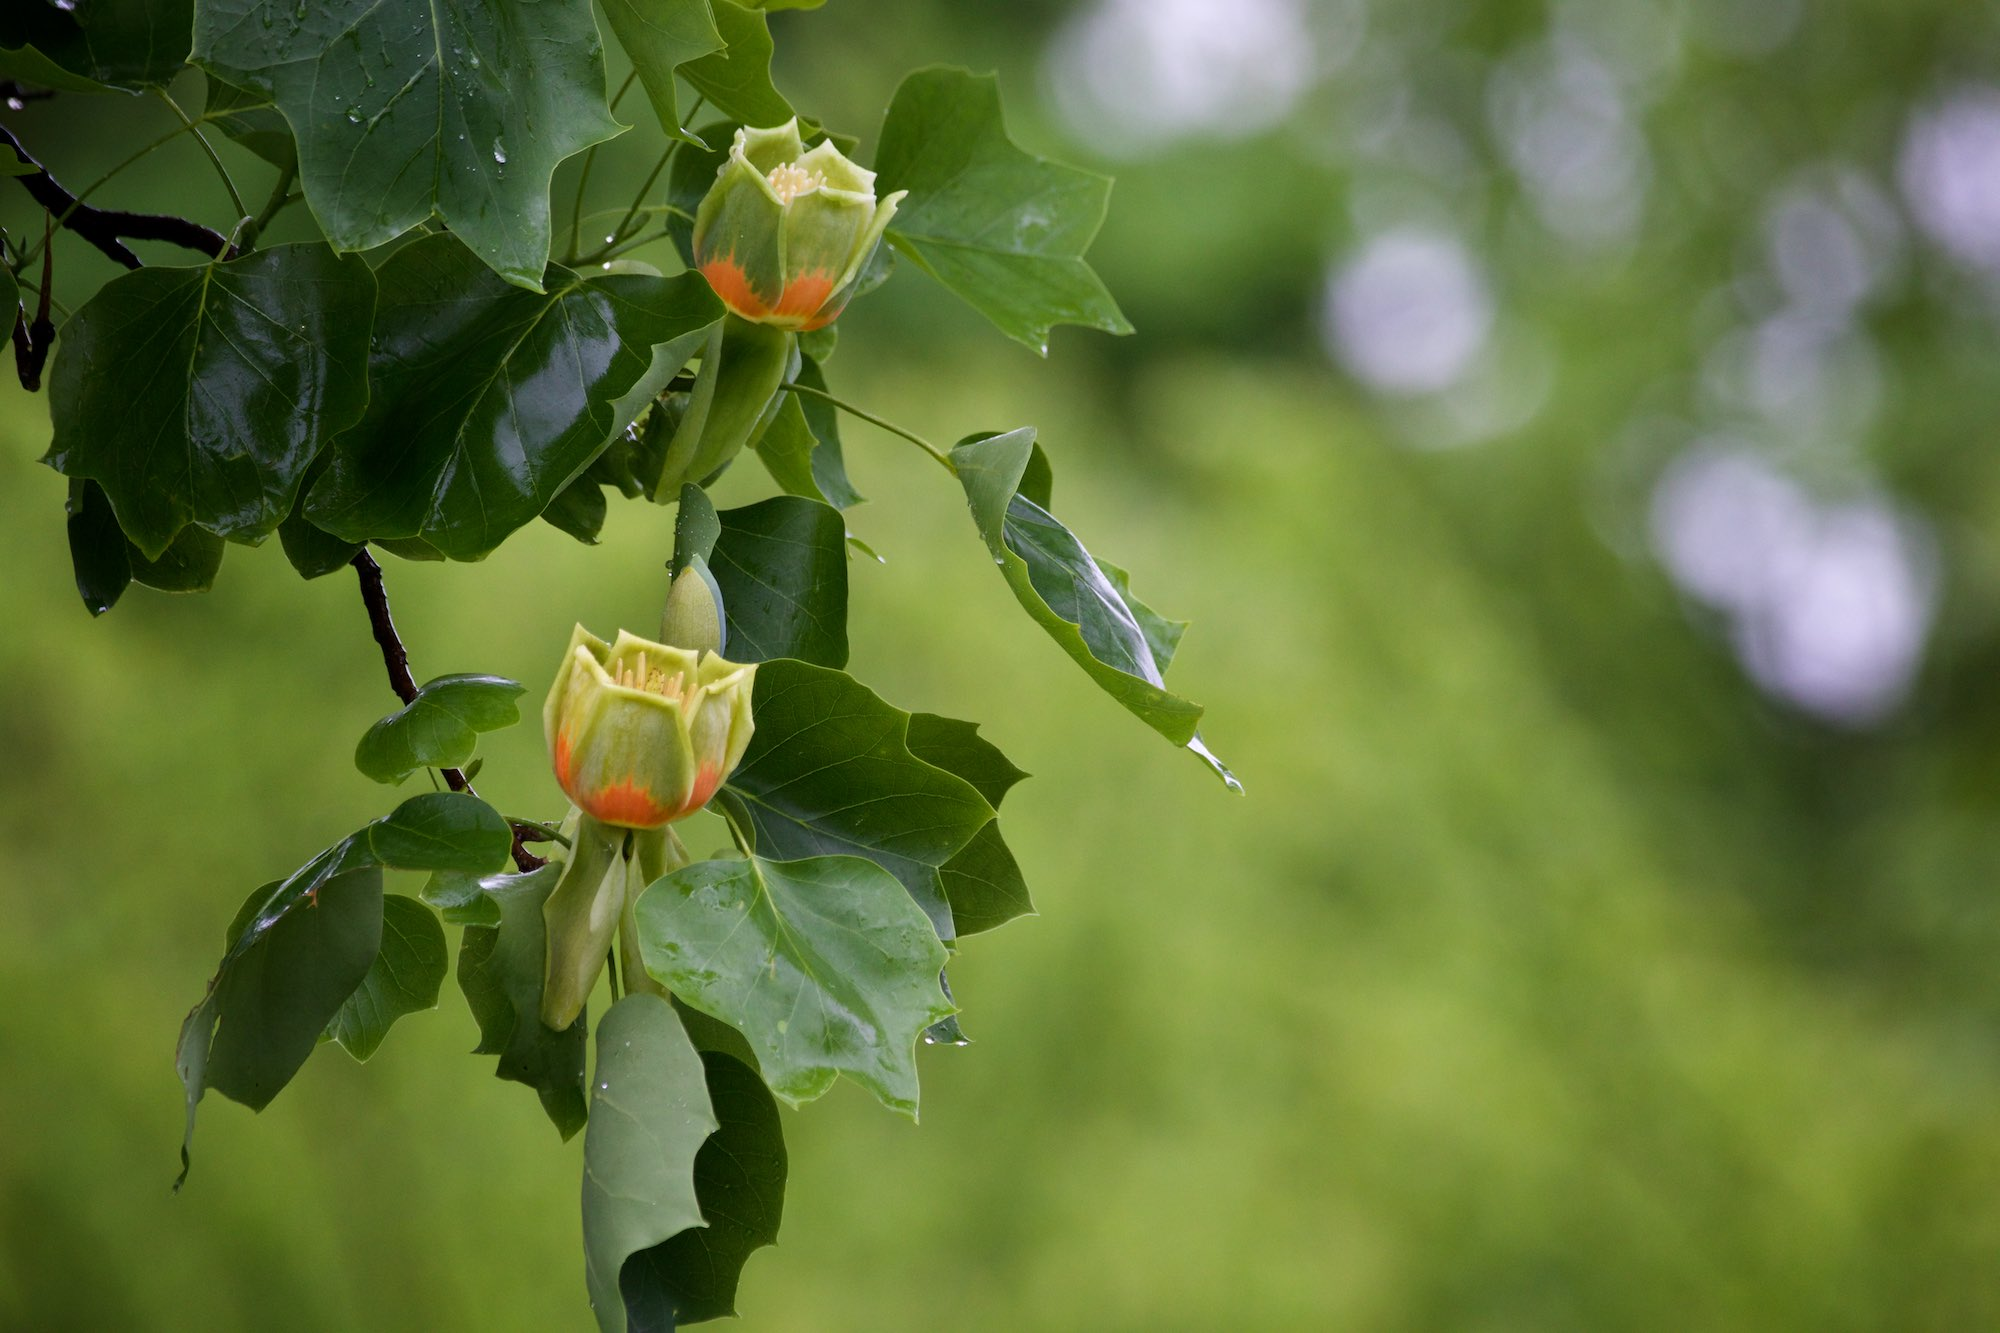 Tuliptree blooms in an eastern meadow. Click on the image for more photos.